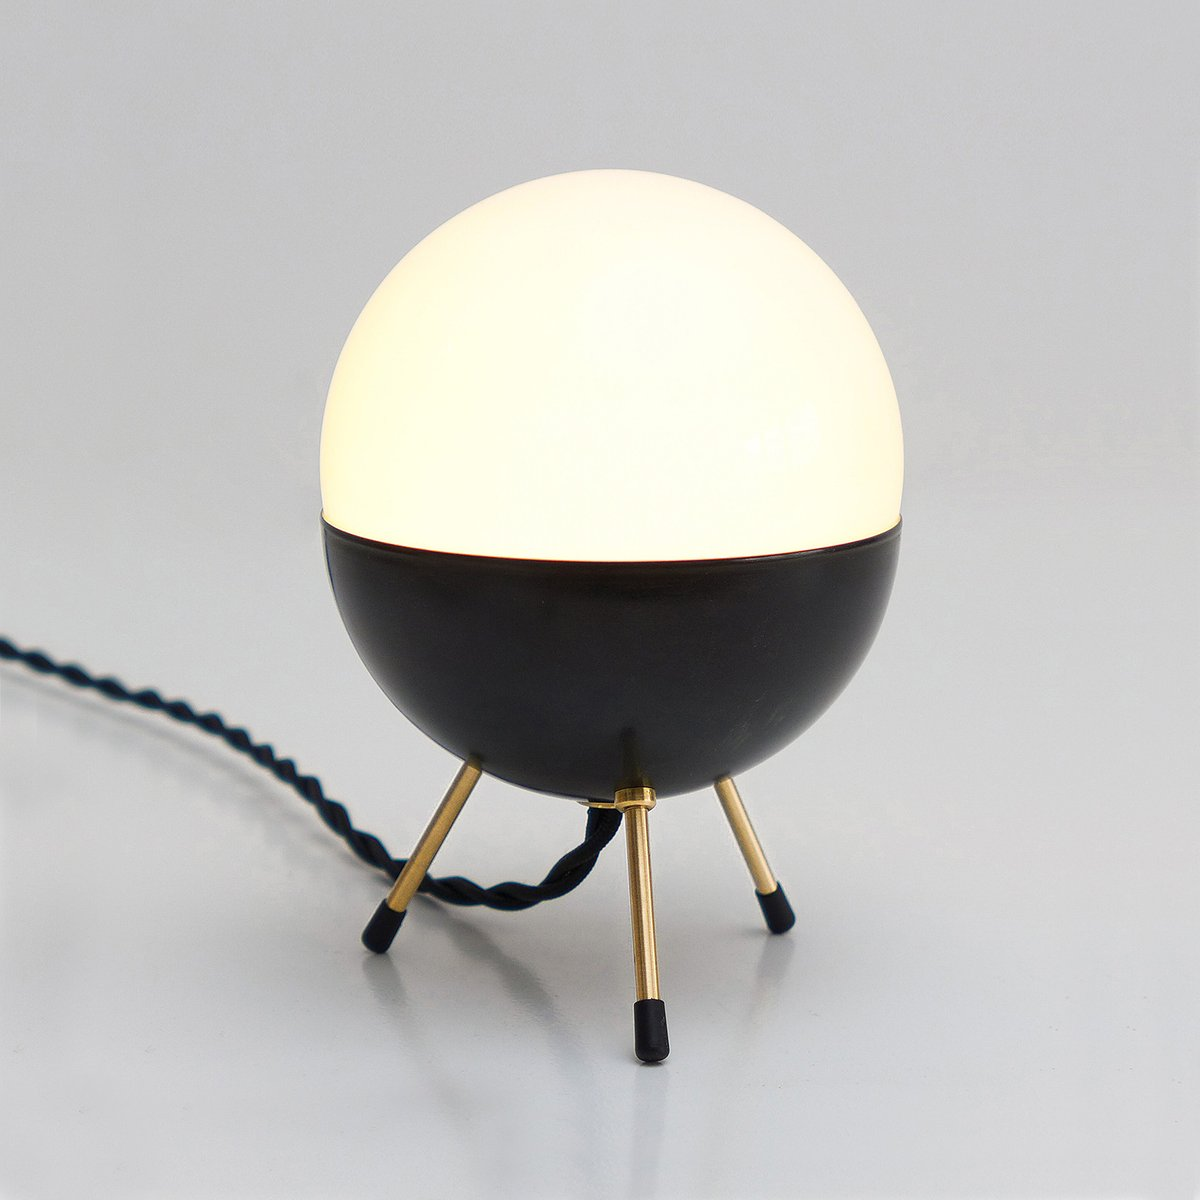 space age minimal sputnik lampe de bureau de balance lamp en vente sur pamono. Black Bedroom Furniture Sets. Home Design Ideas